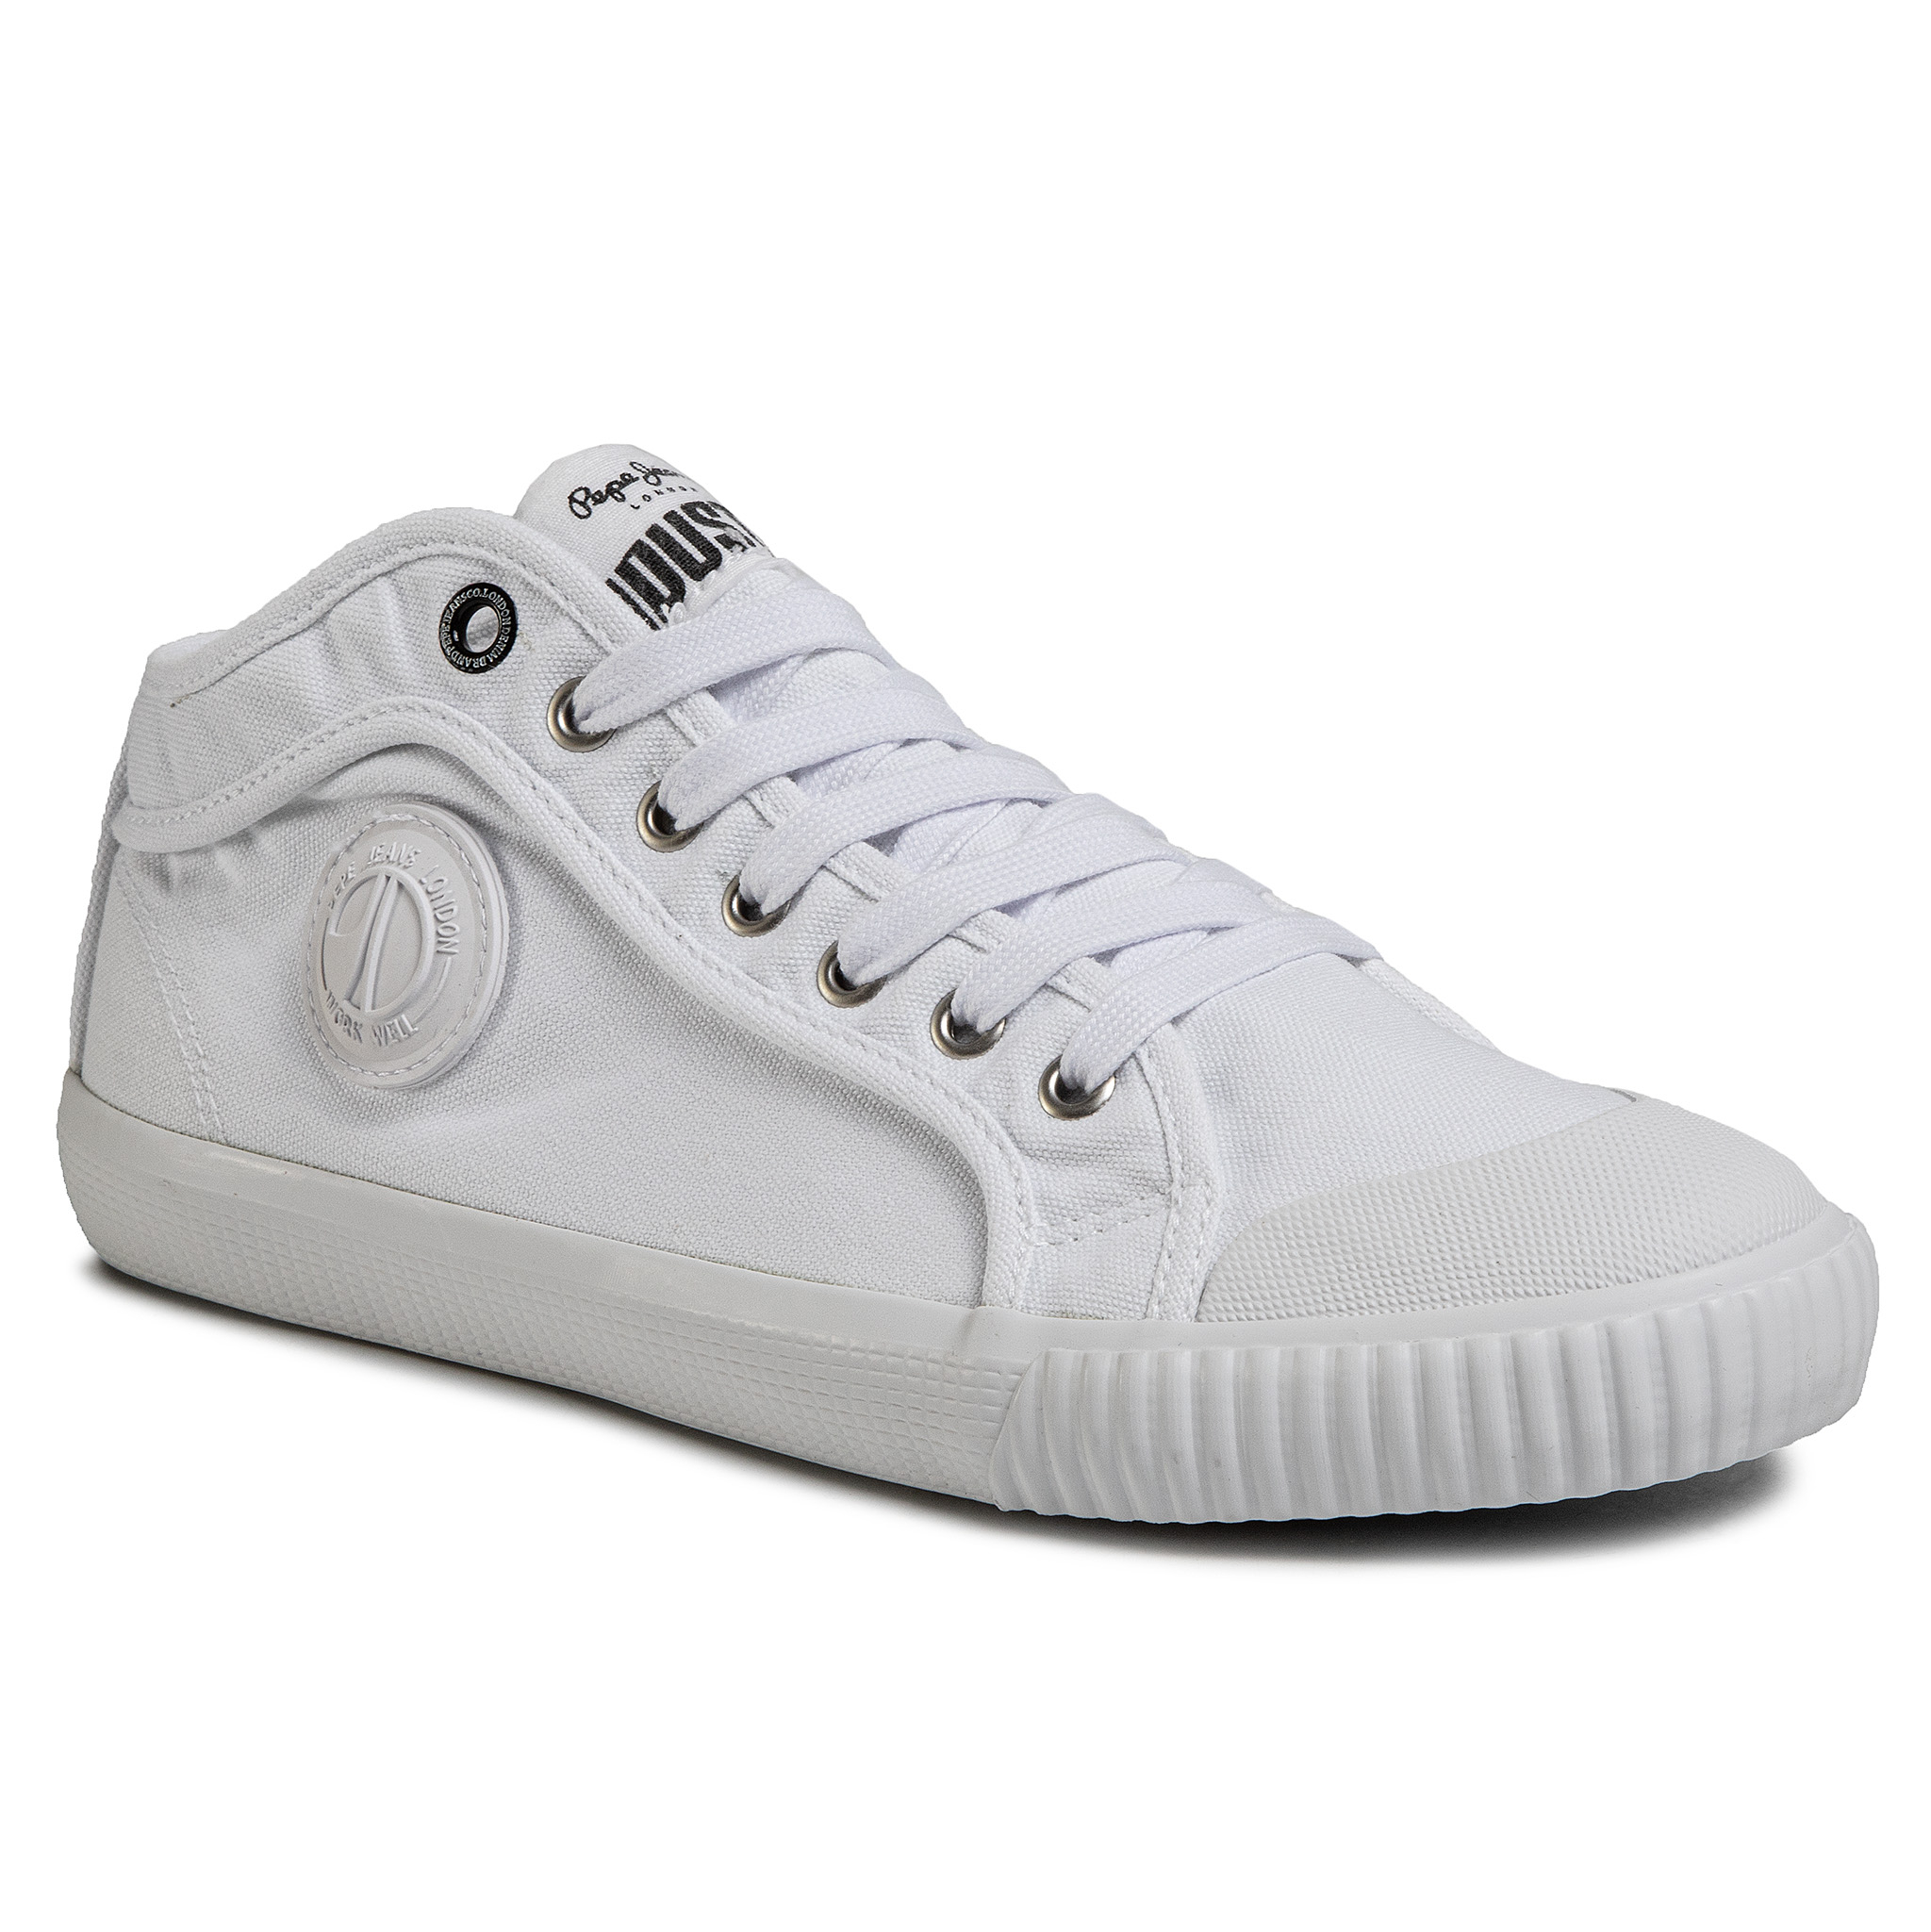 Teniși PEPE JEANS - Industry Classic PMS30628 White 800